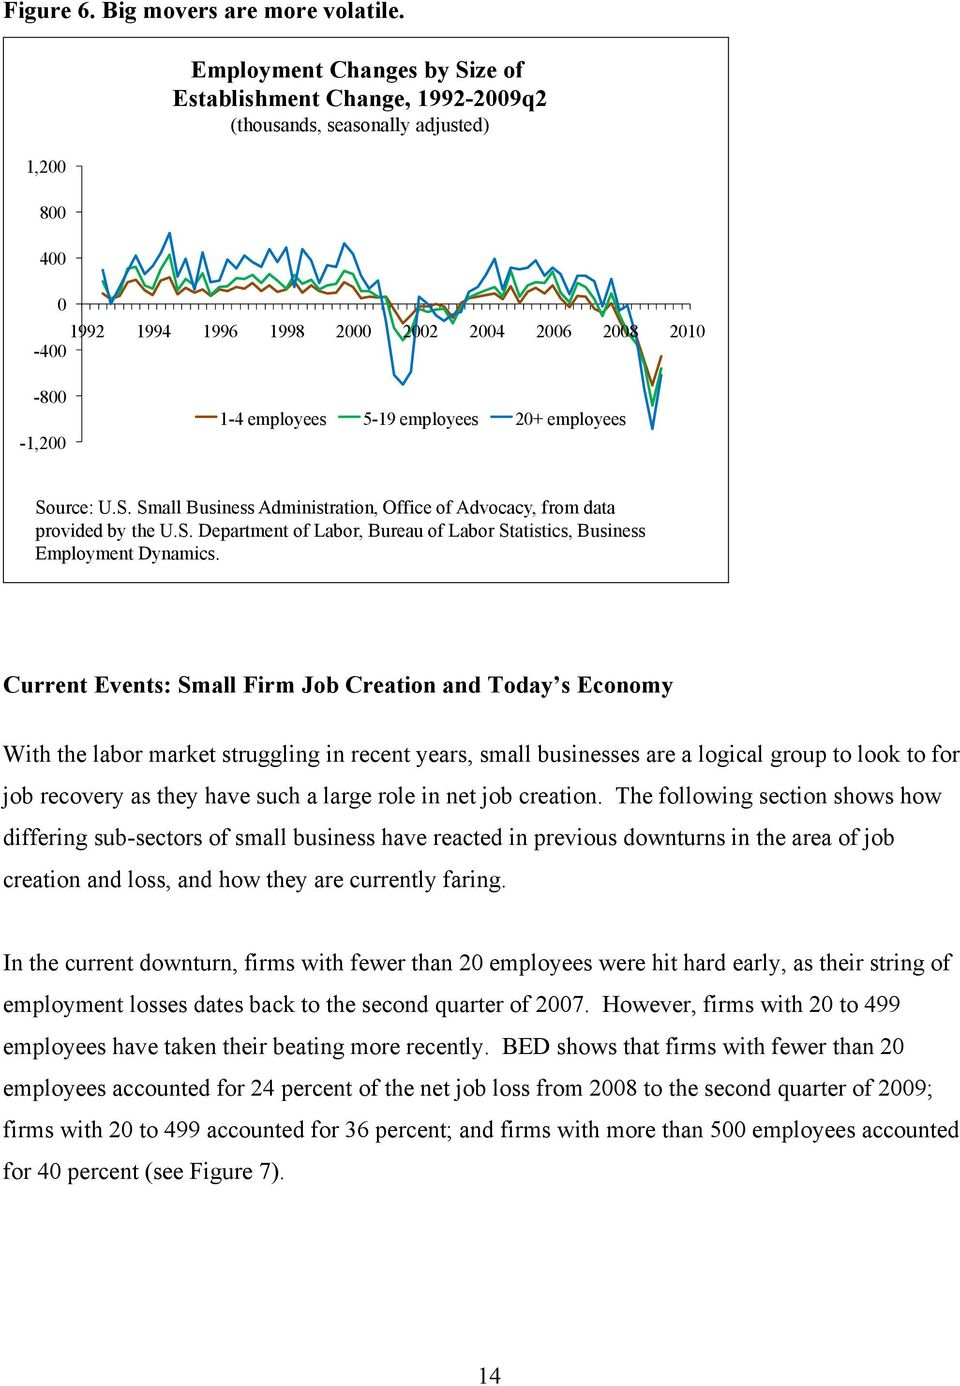 employees 20+ employees Source: U.S. Small Business Administration, Office of Advocacy, from data provided by the U.S. Department of Labor, Bureau of Labor Statistics, Business Employment Dynamics.